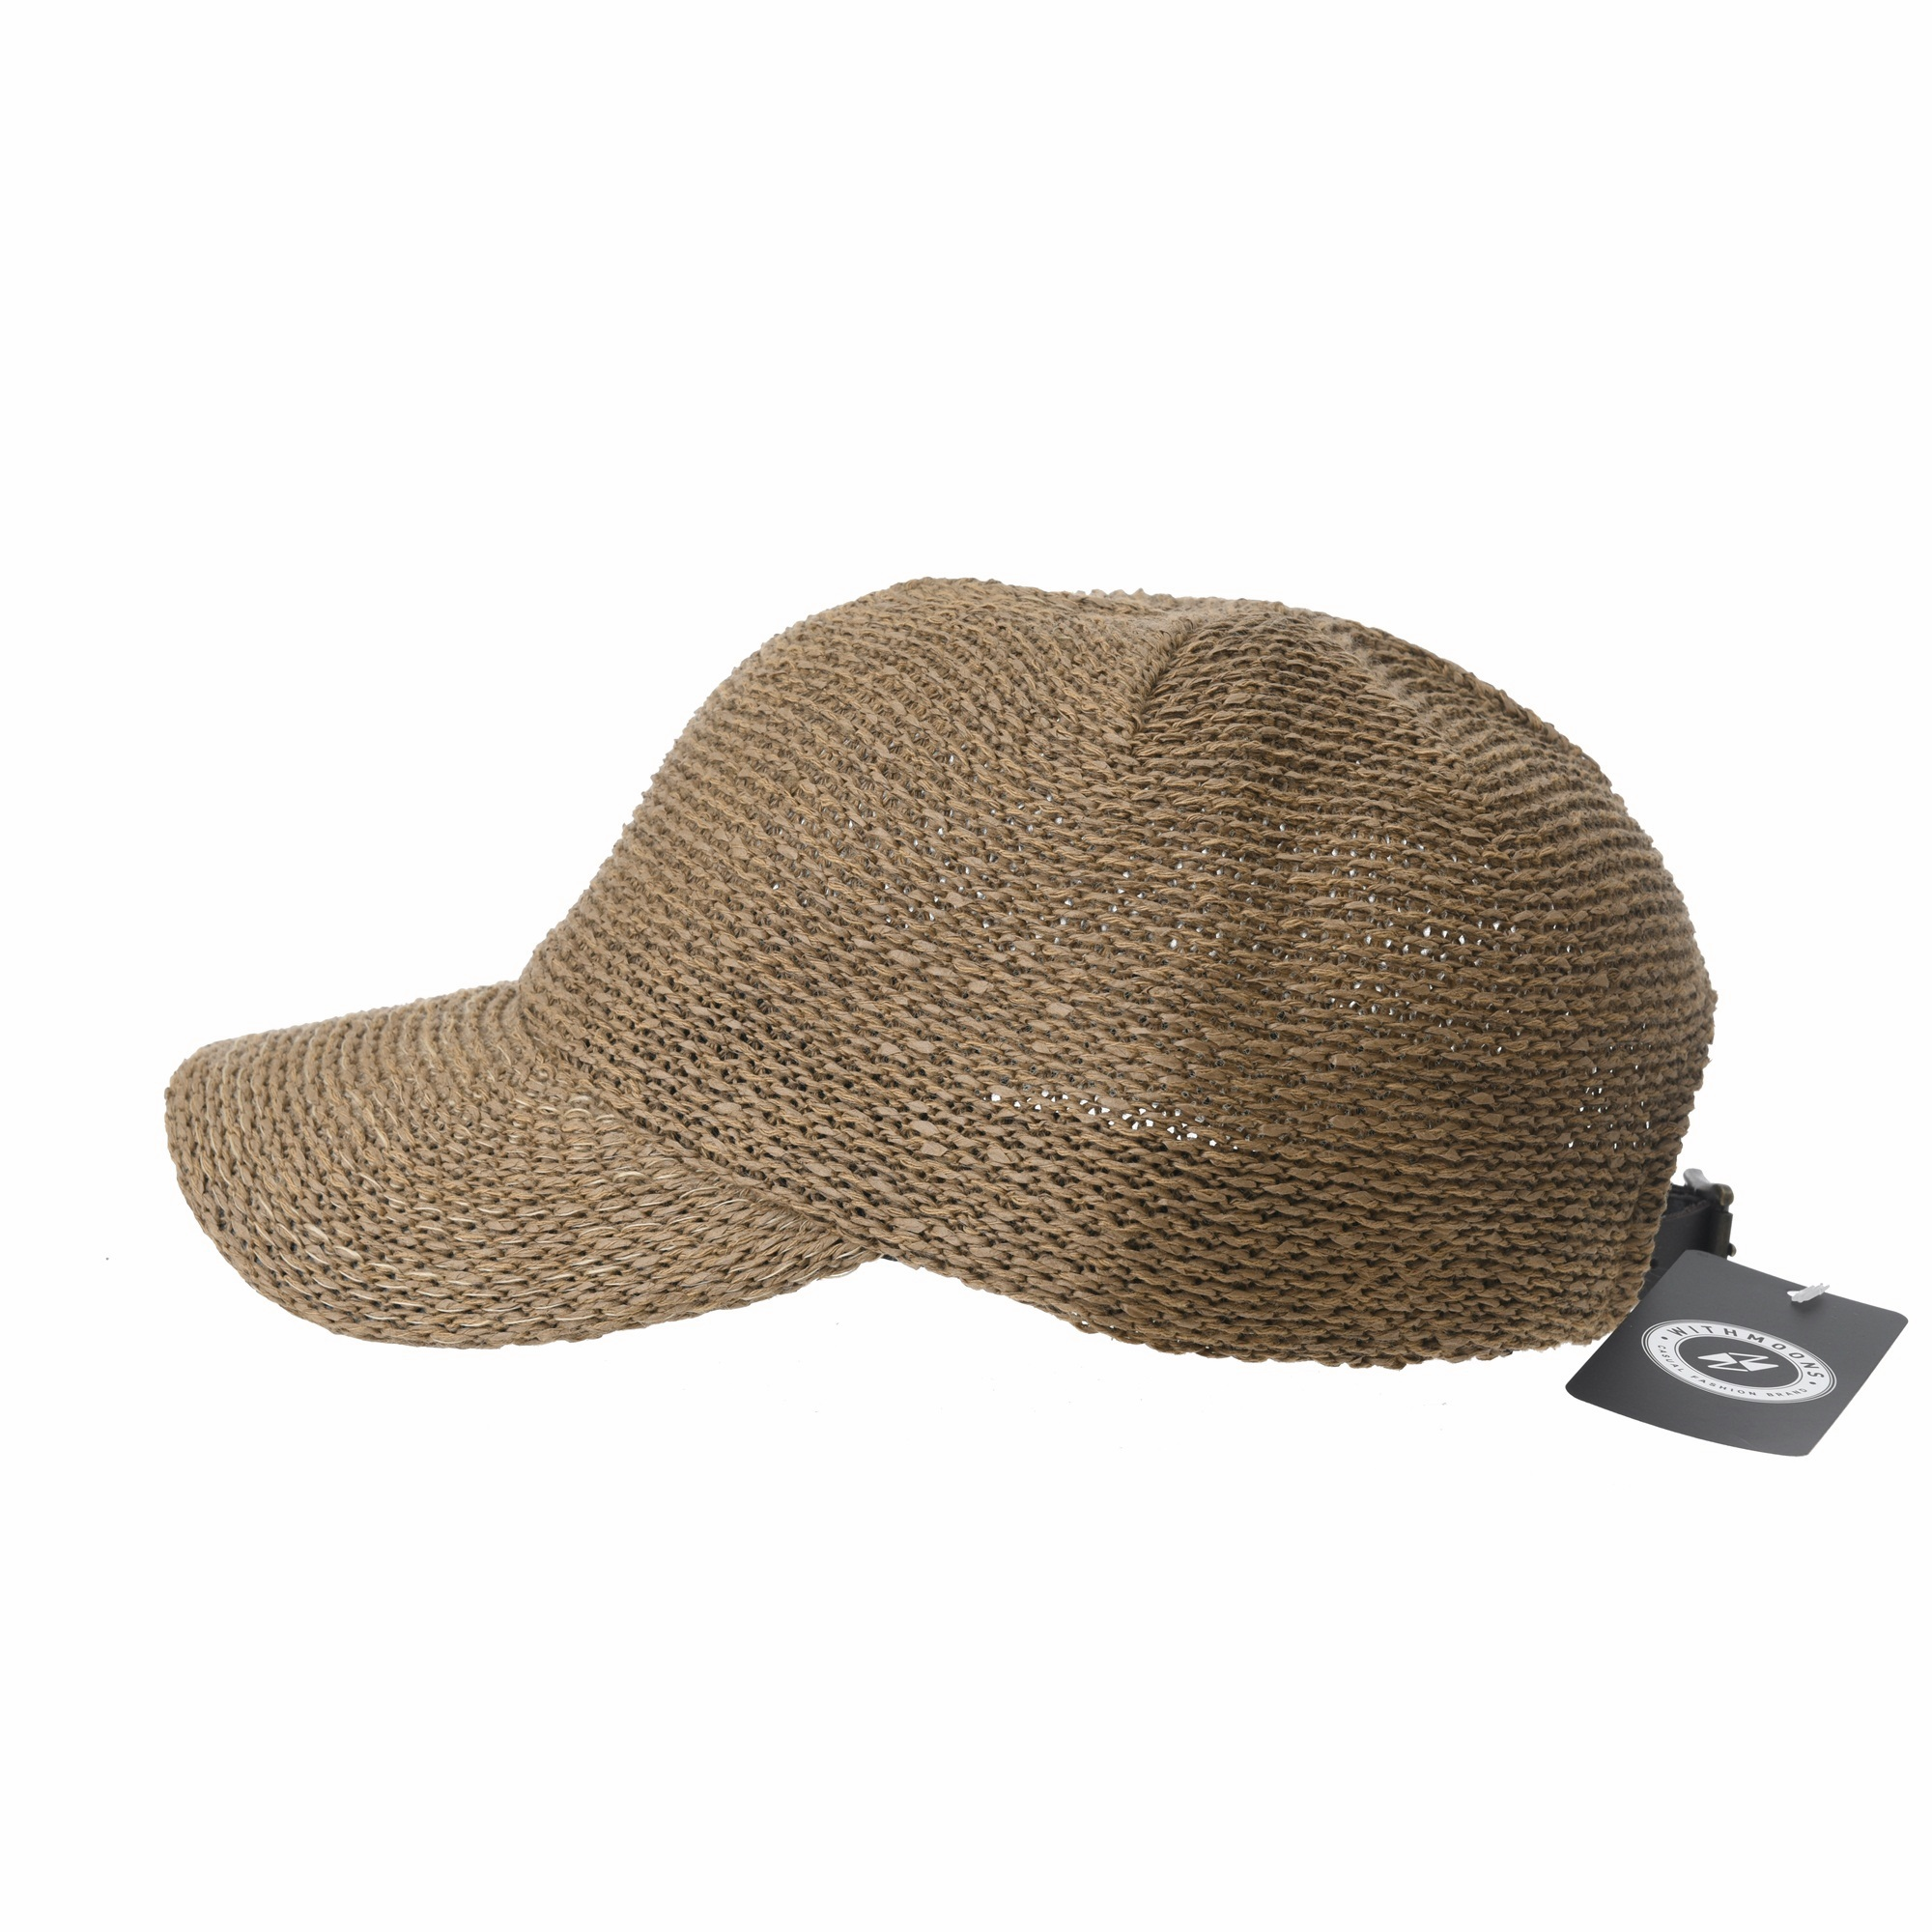 WITHMOONS Baseball Cap Summer Cool Paperstraw Cotton Mesh Ballcap For Men  Women KR1960 (Beige) - Walmart.com 7a33a2ca0016